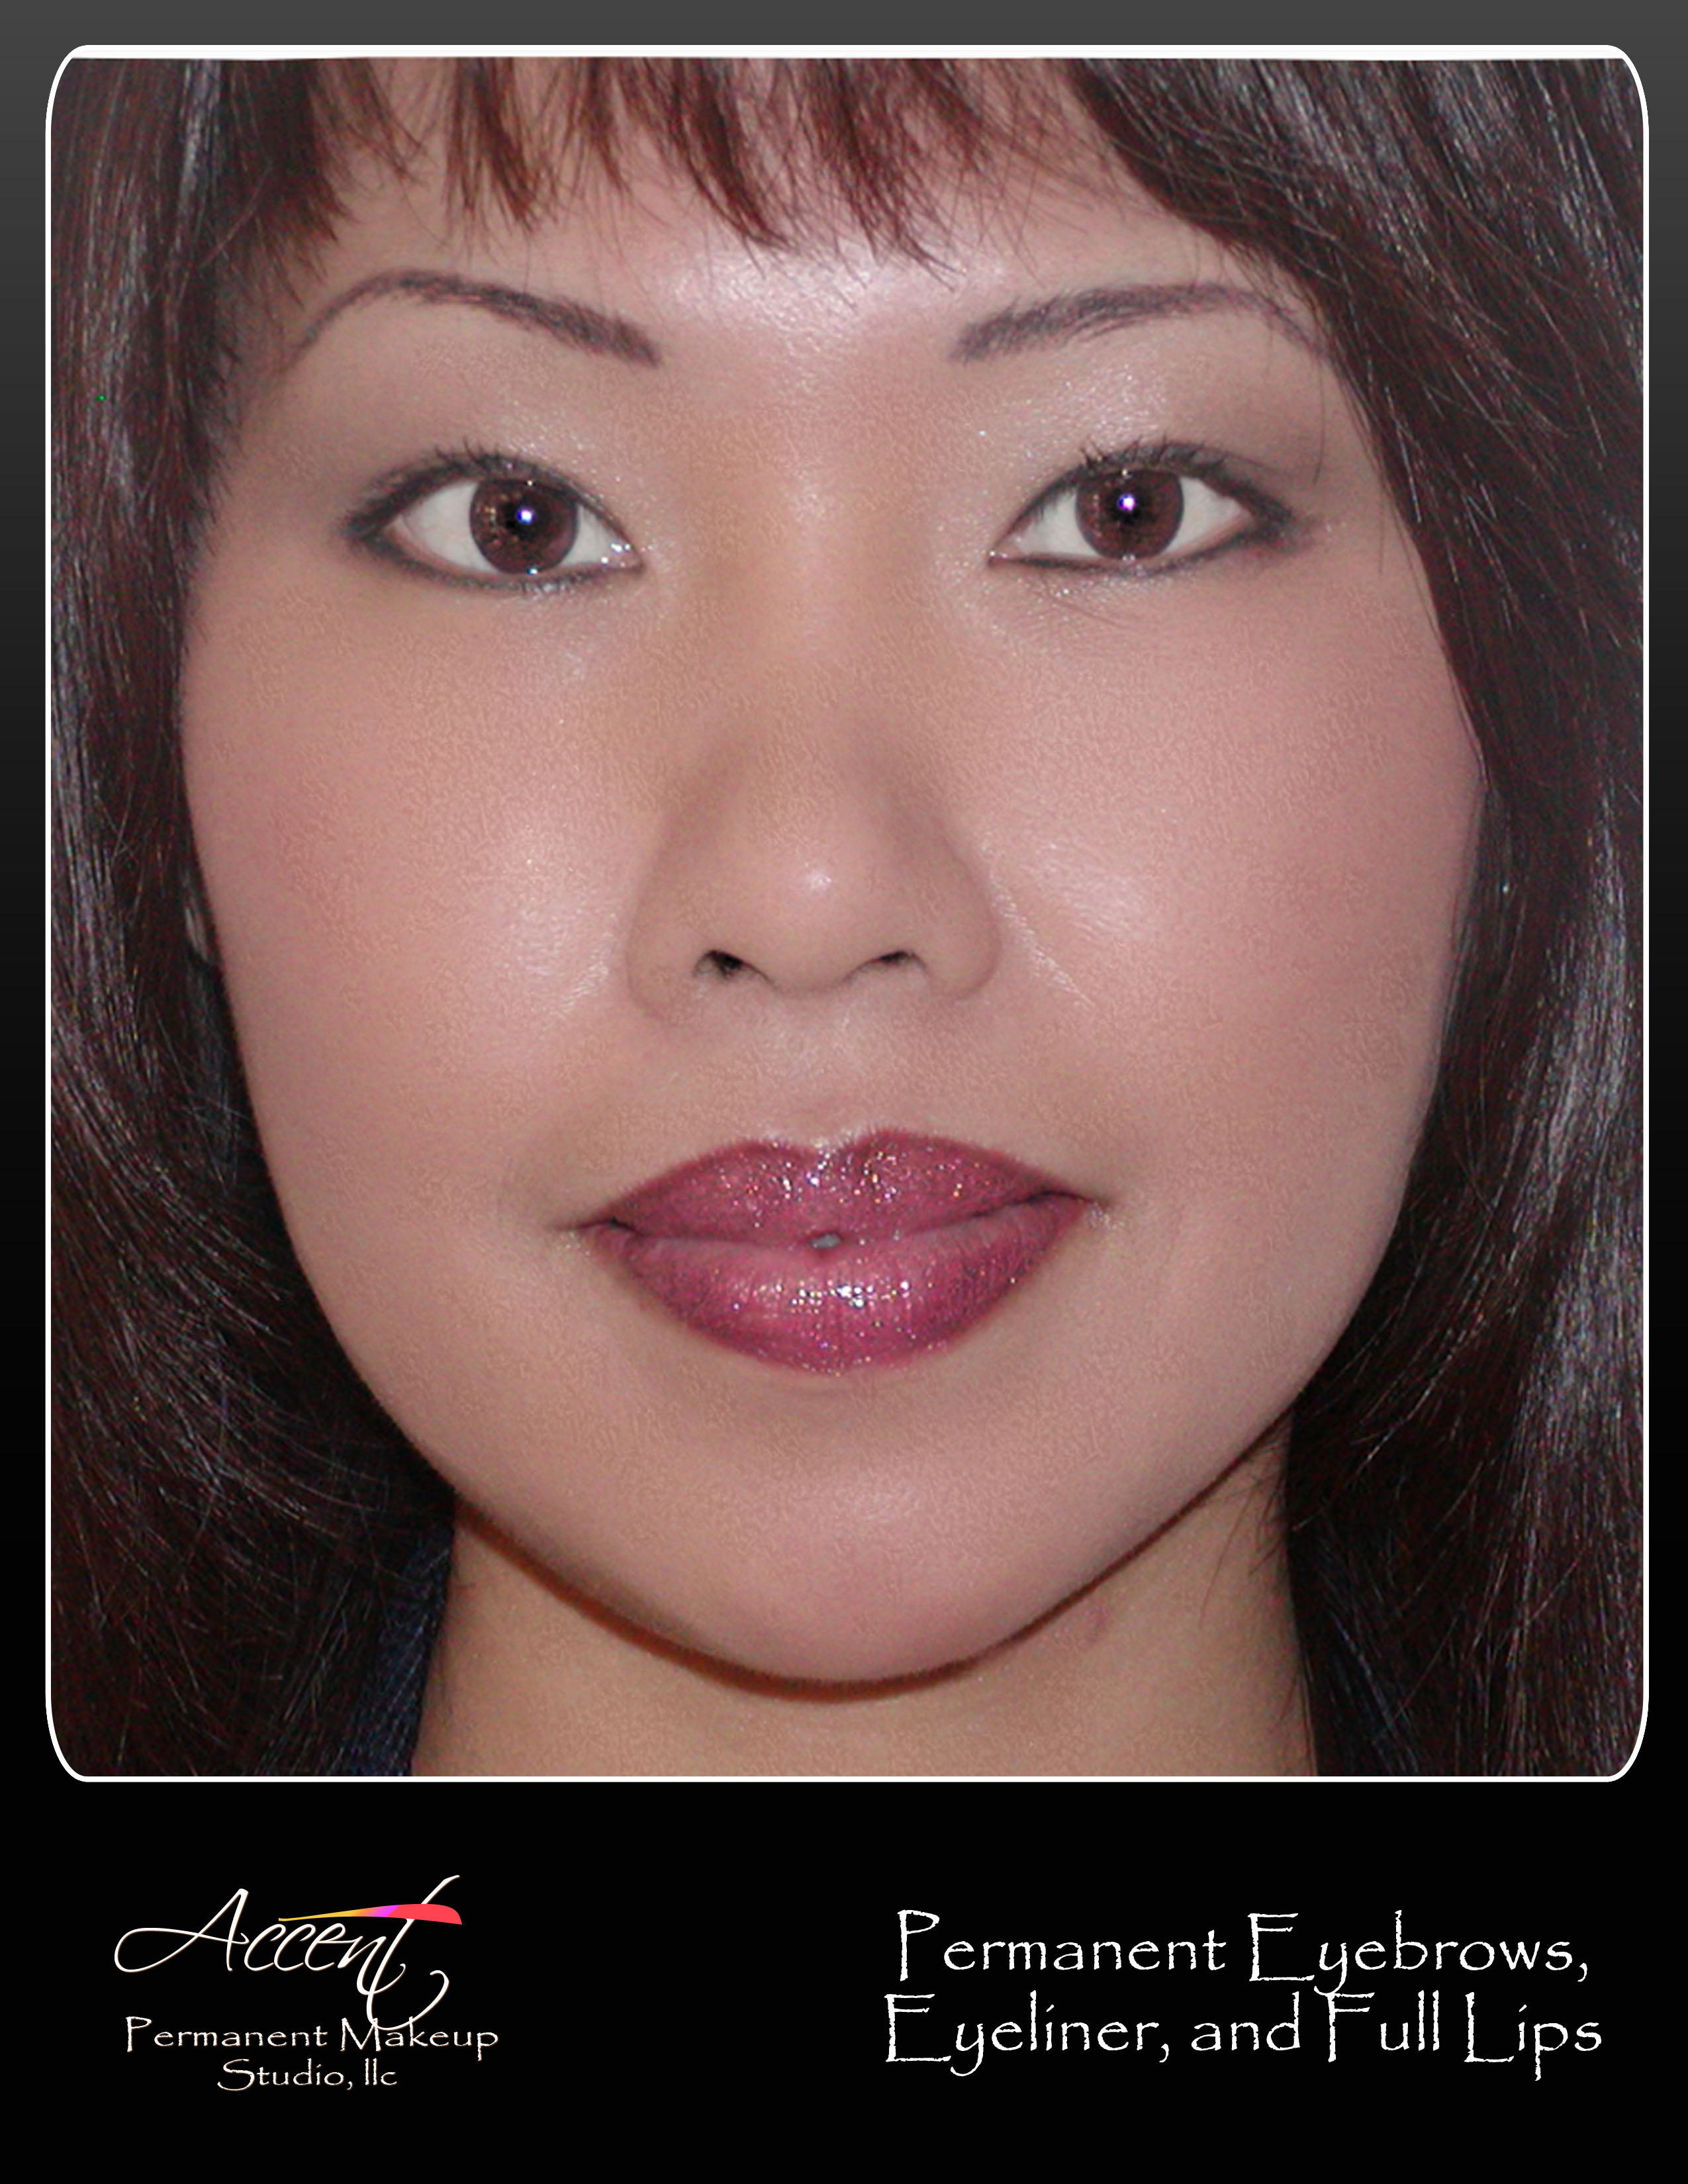 Permanent Makeup Eyebrows, Eyeliner, and Lips